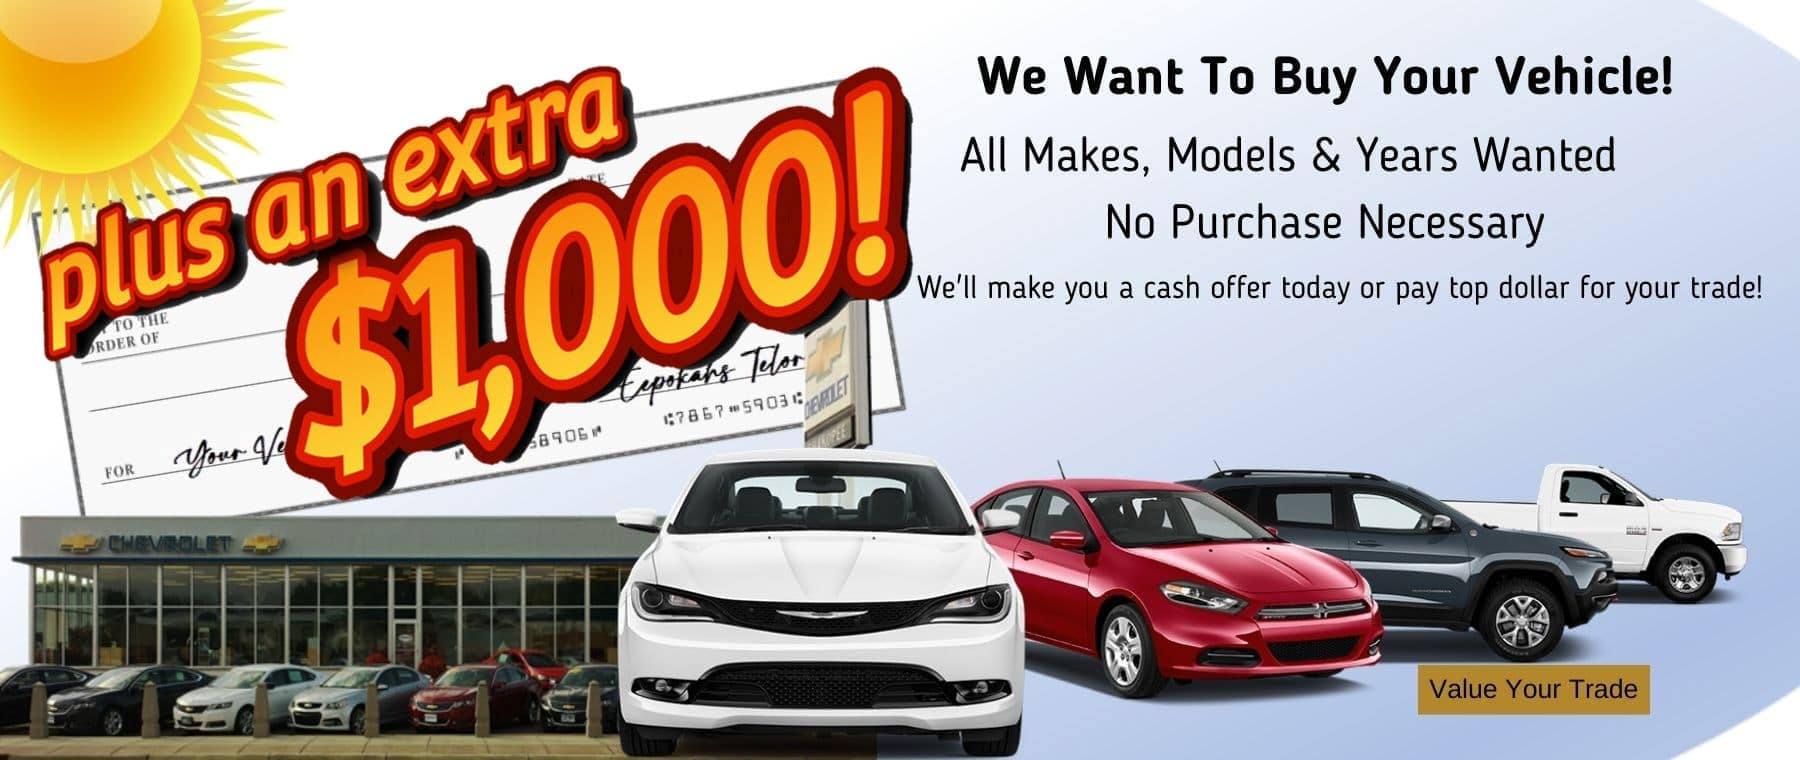 We Want To Buy Your Vehicle at Shakopee Chevrolet